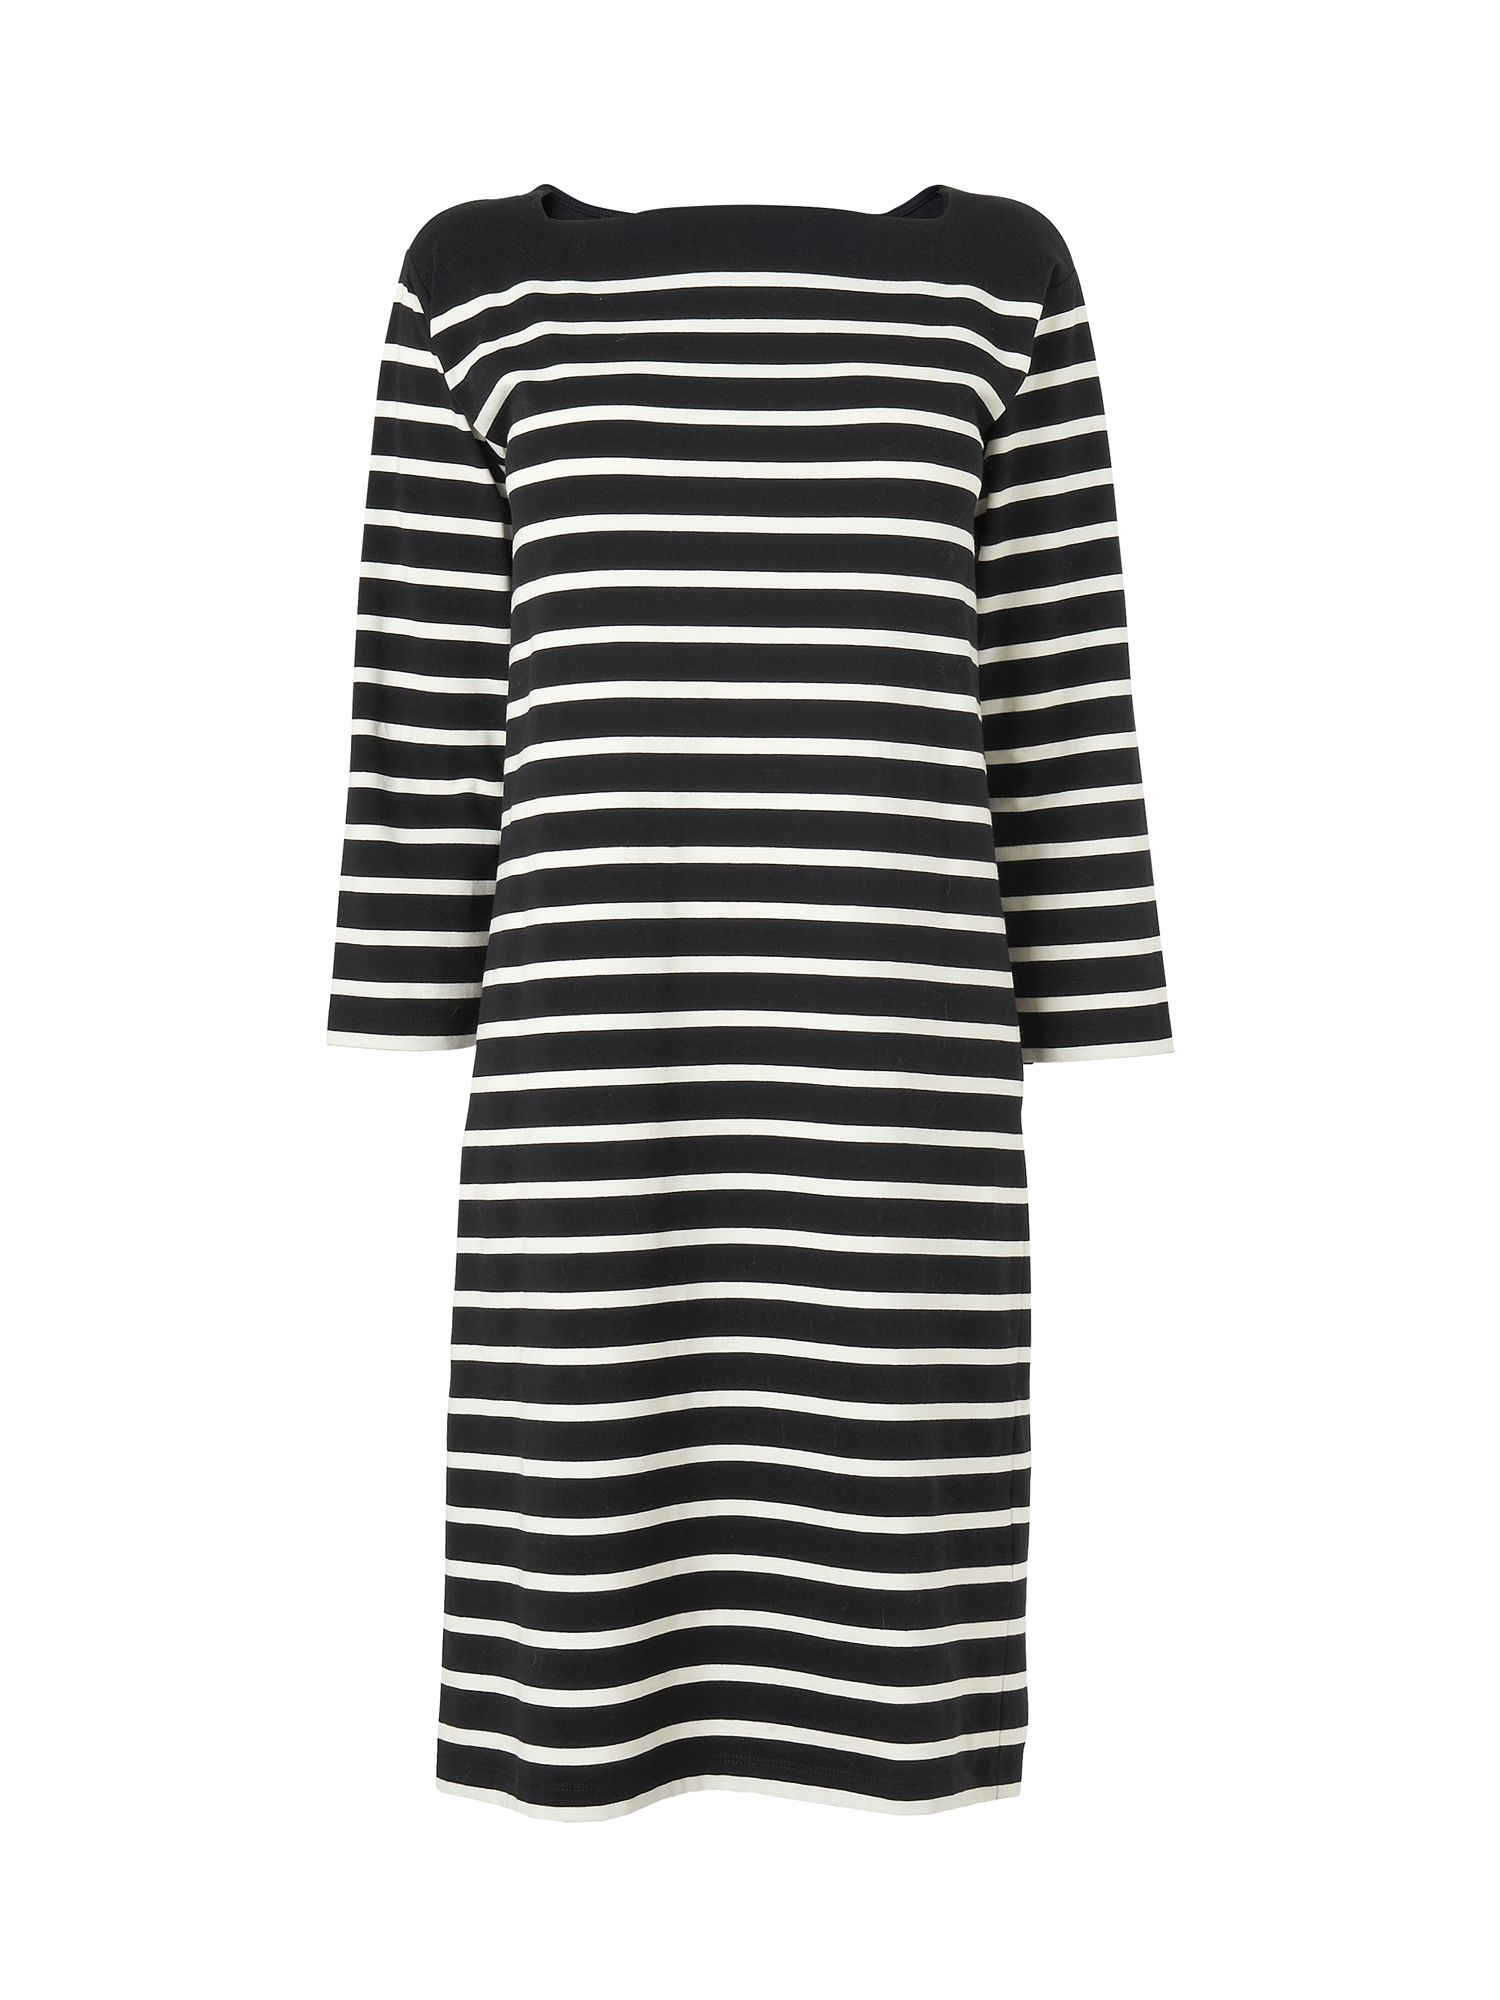 Square neck stripe jersey dress